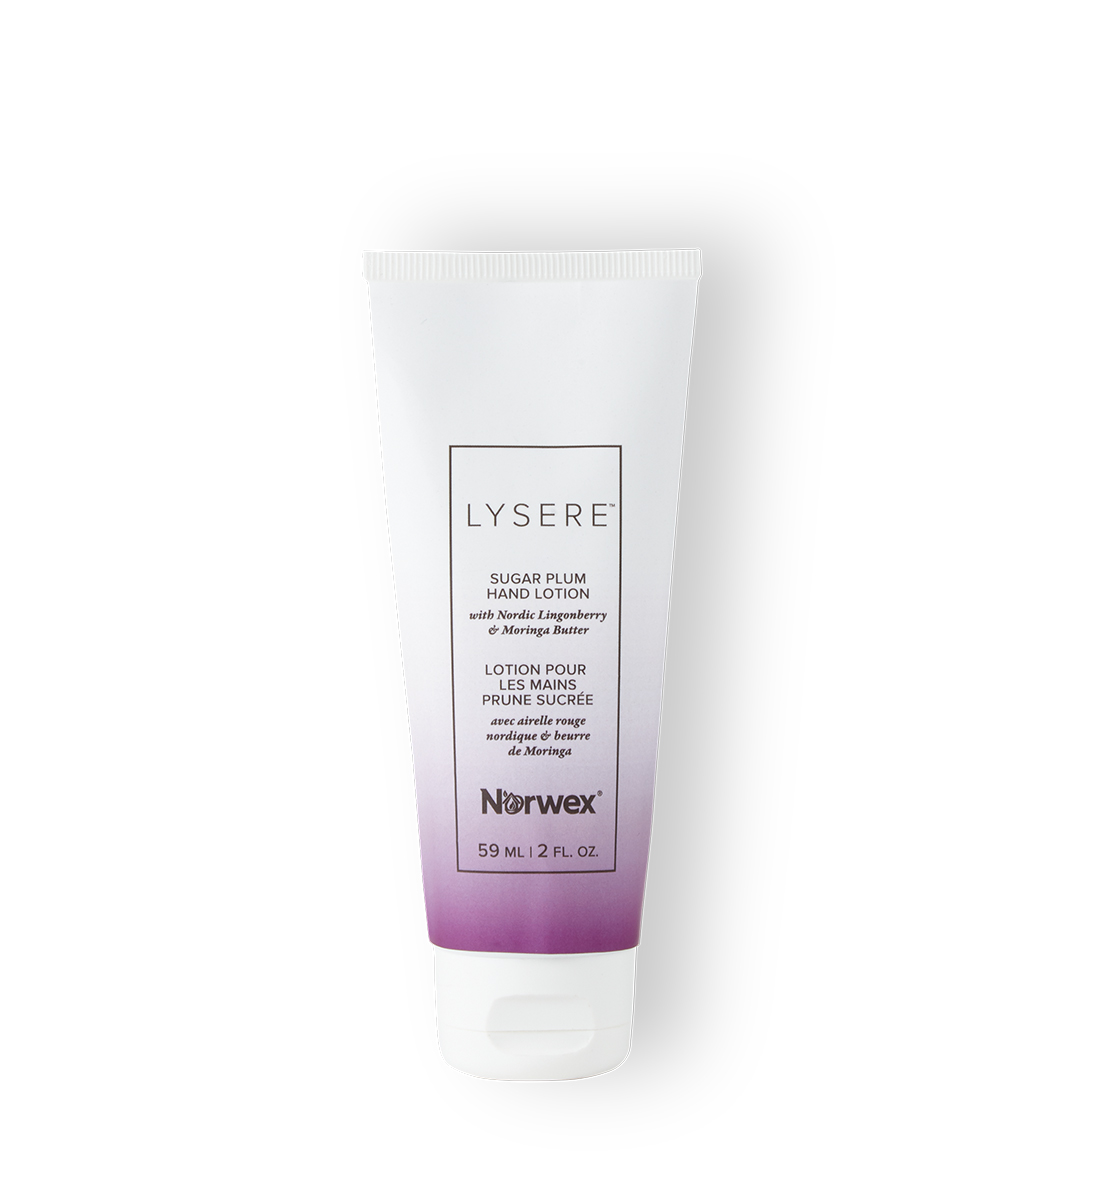 Limited Edition Lysere Sugar Plum Hand Lotion